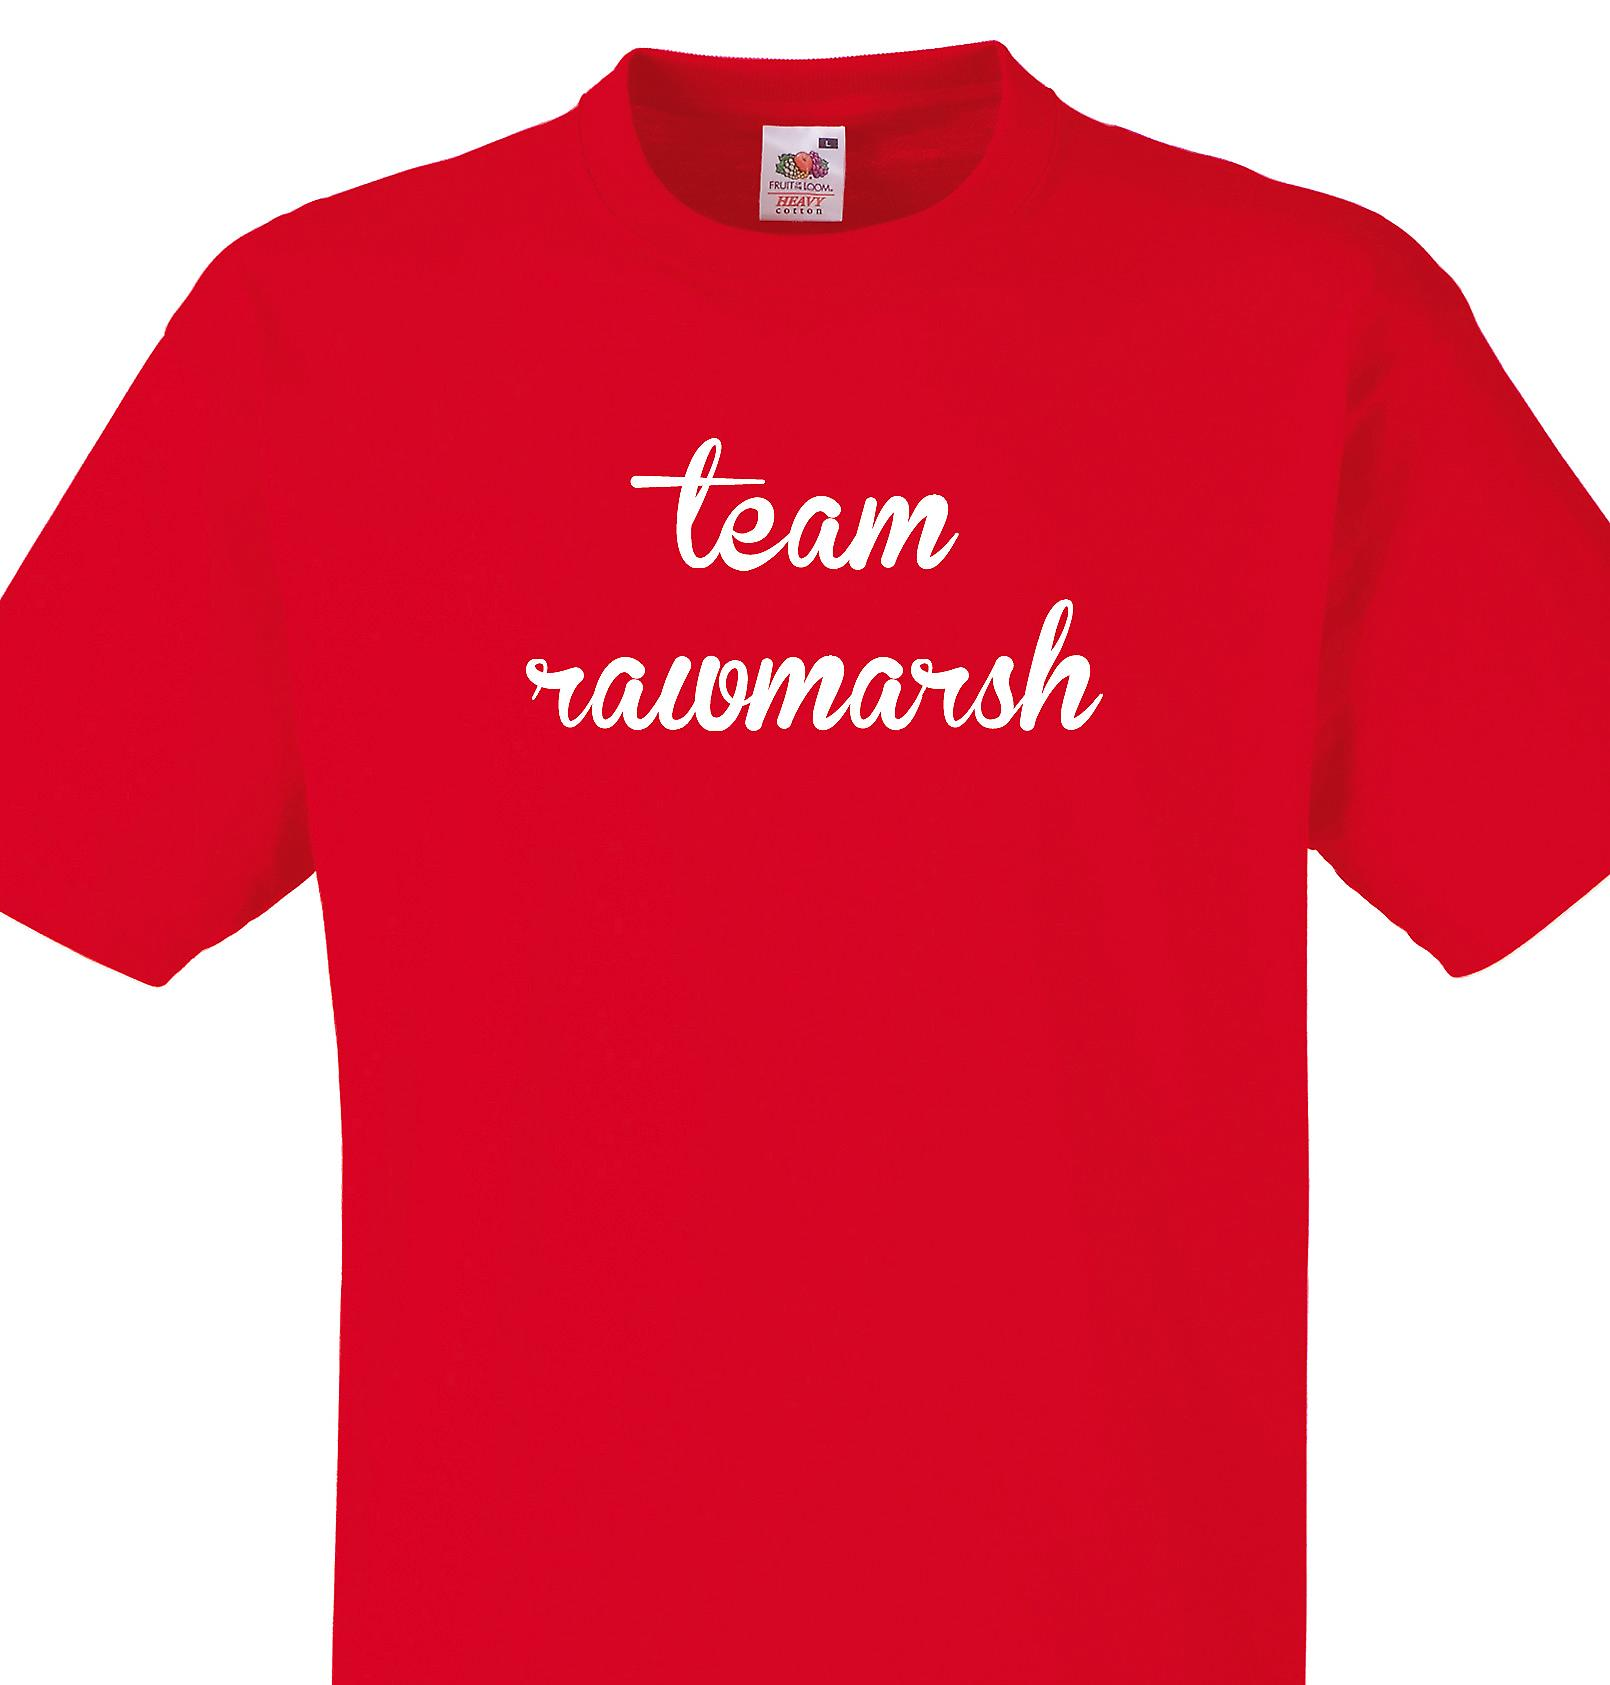 Team Rawmarsh Red T shirt